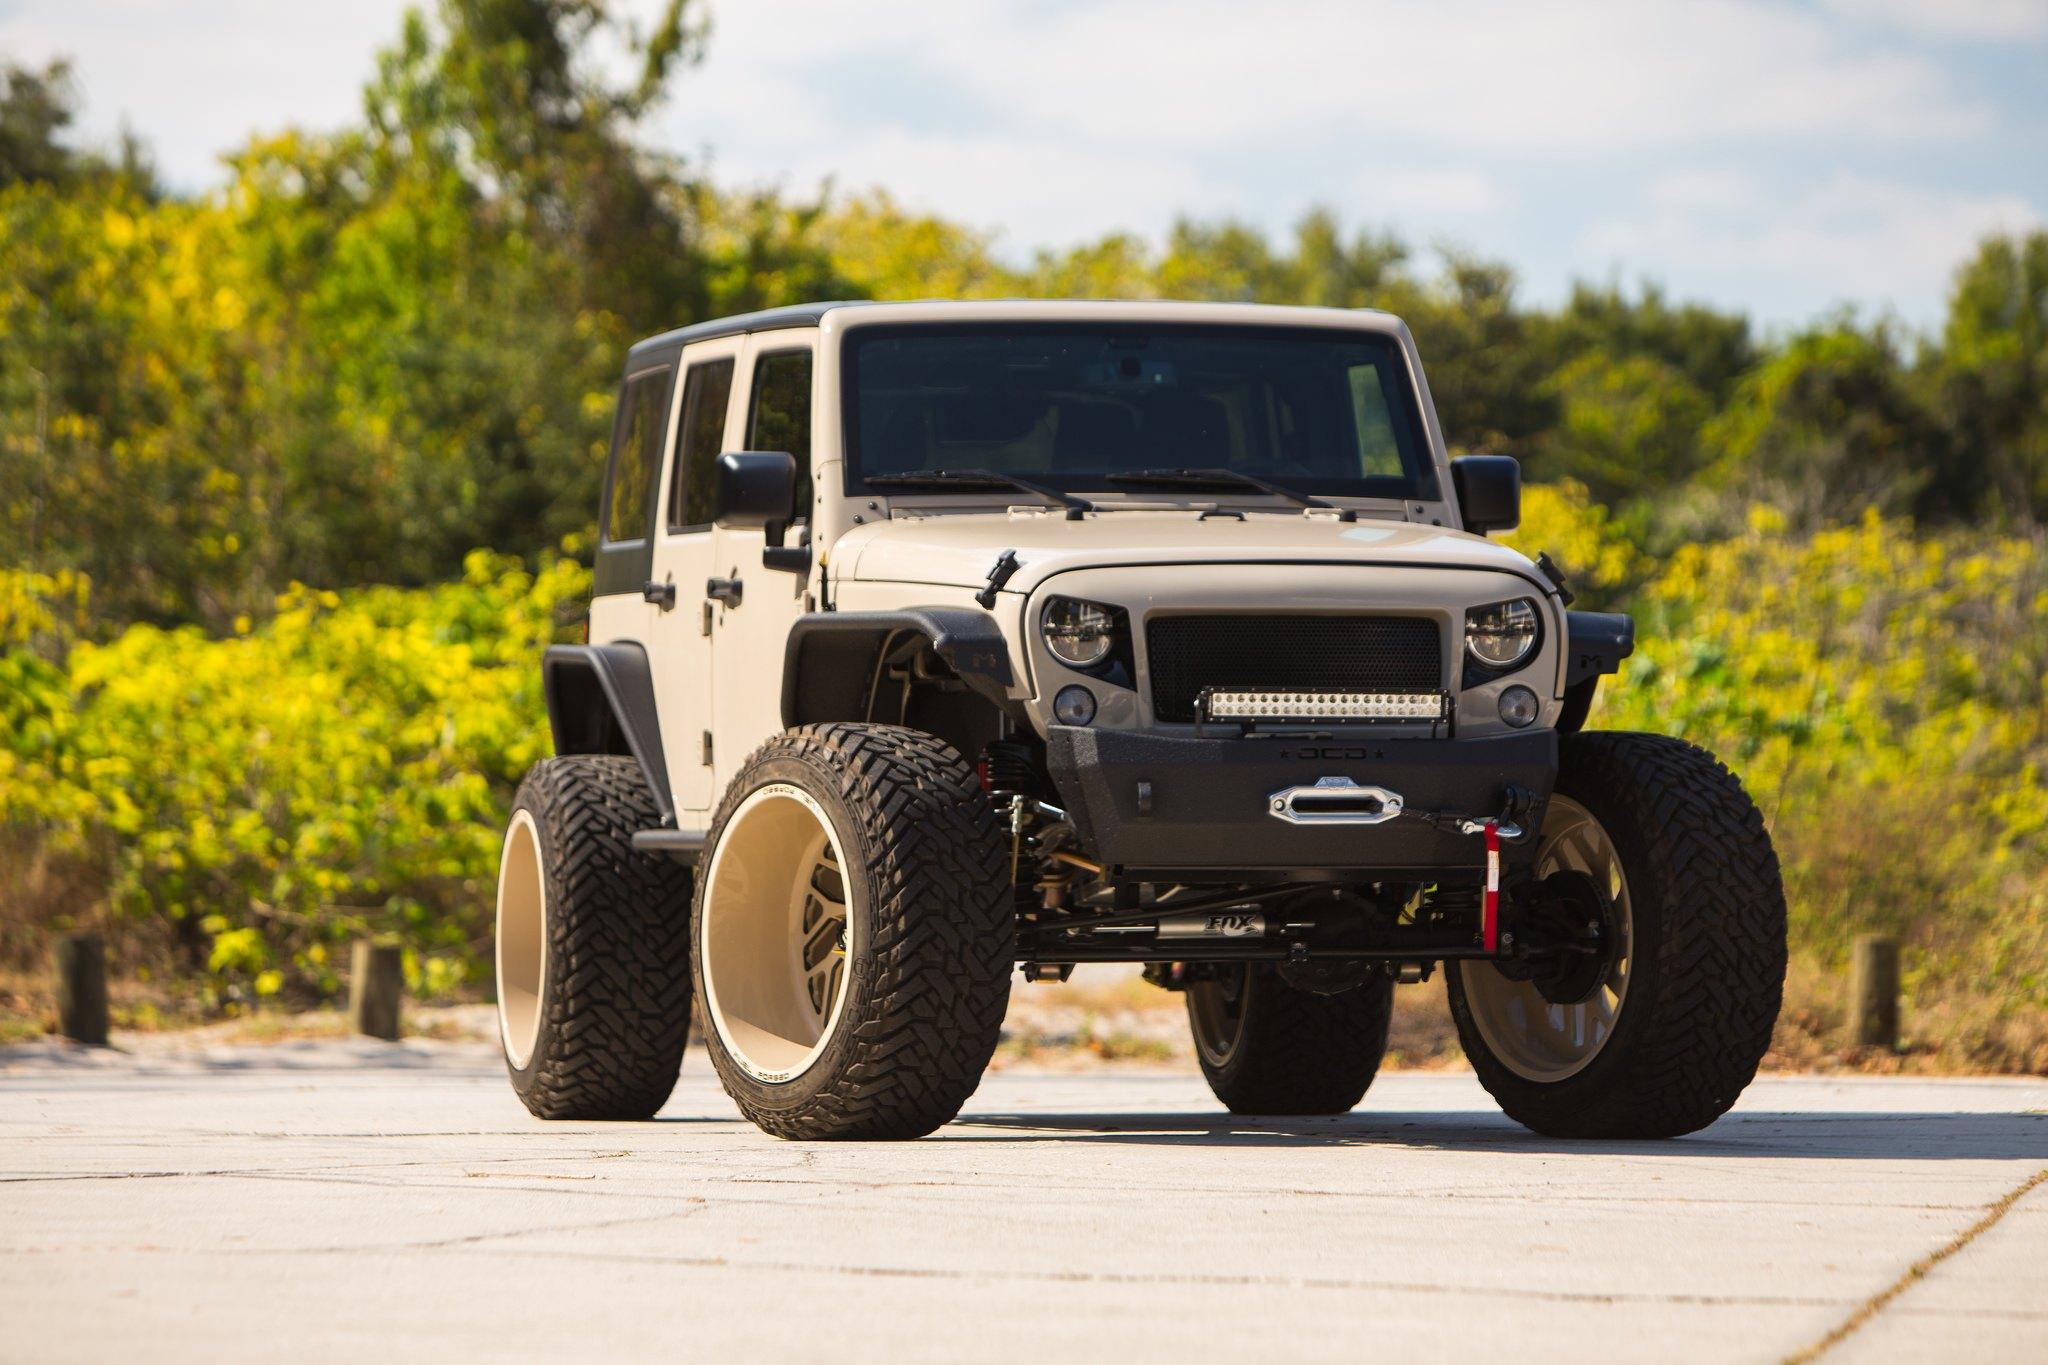 Jeep Jk Mods >> Mean Looking Jeep Wrangler Unlimited With Off Road Mods And